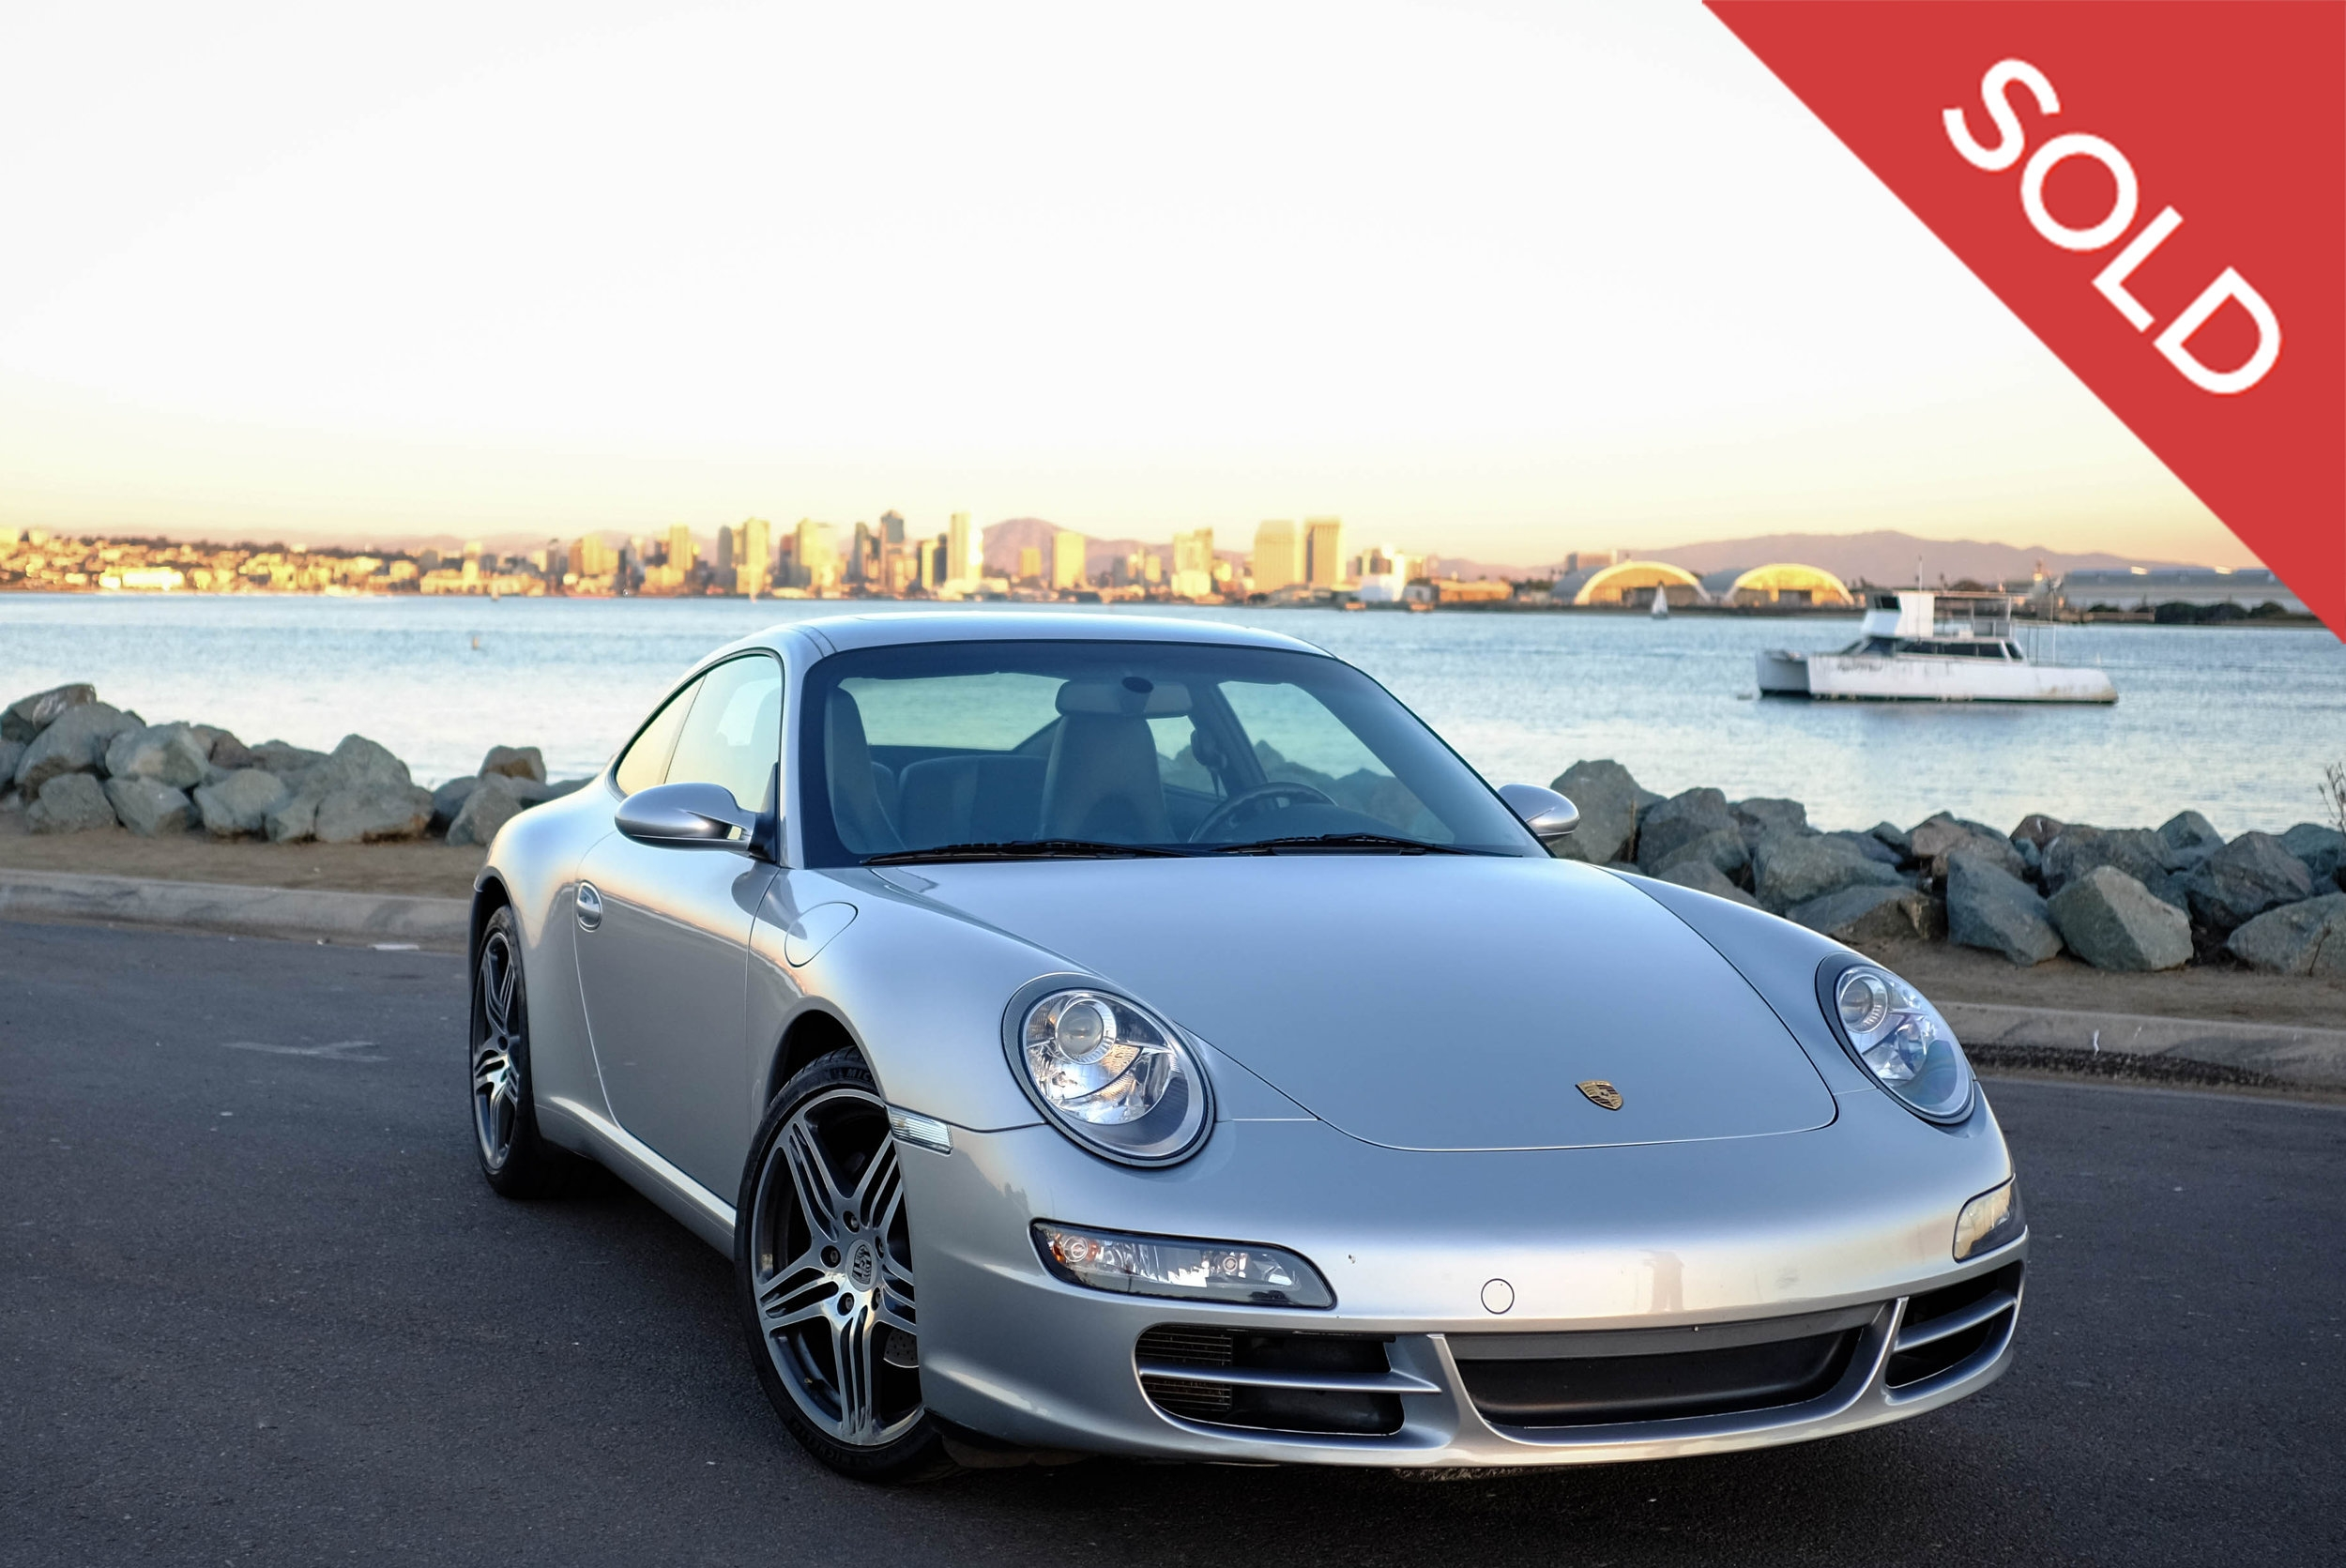 2008 Porsche 911 Carrera - $38,500 - Sold 1/19/2018